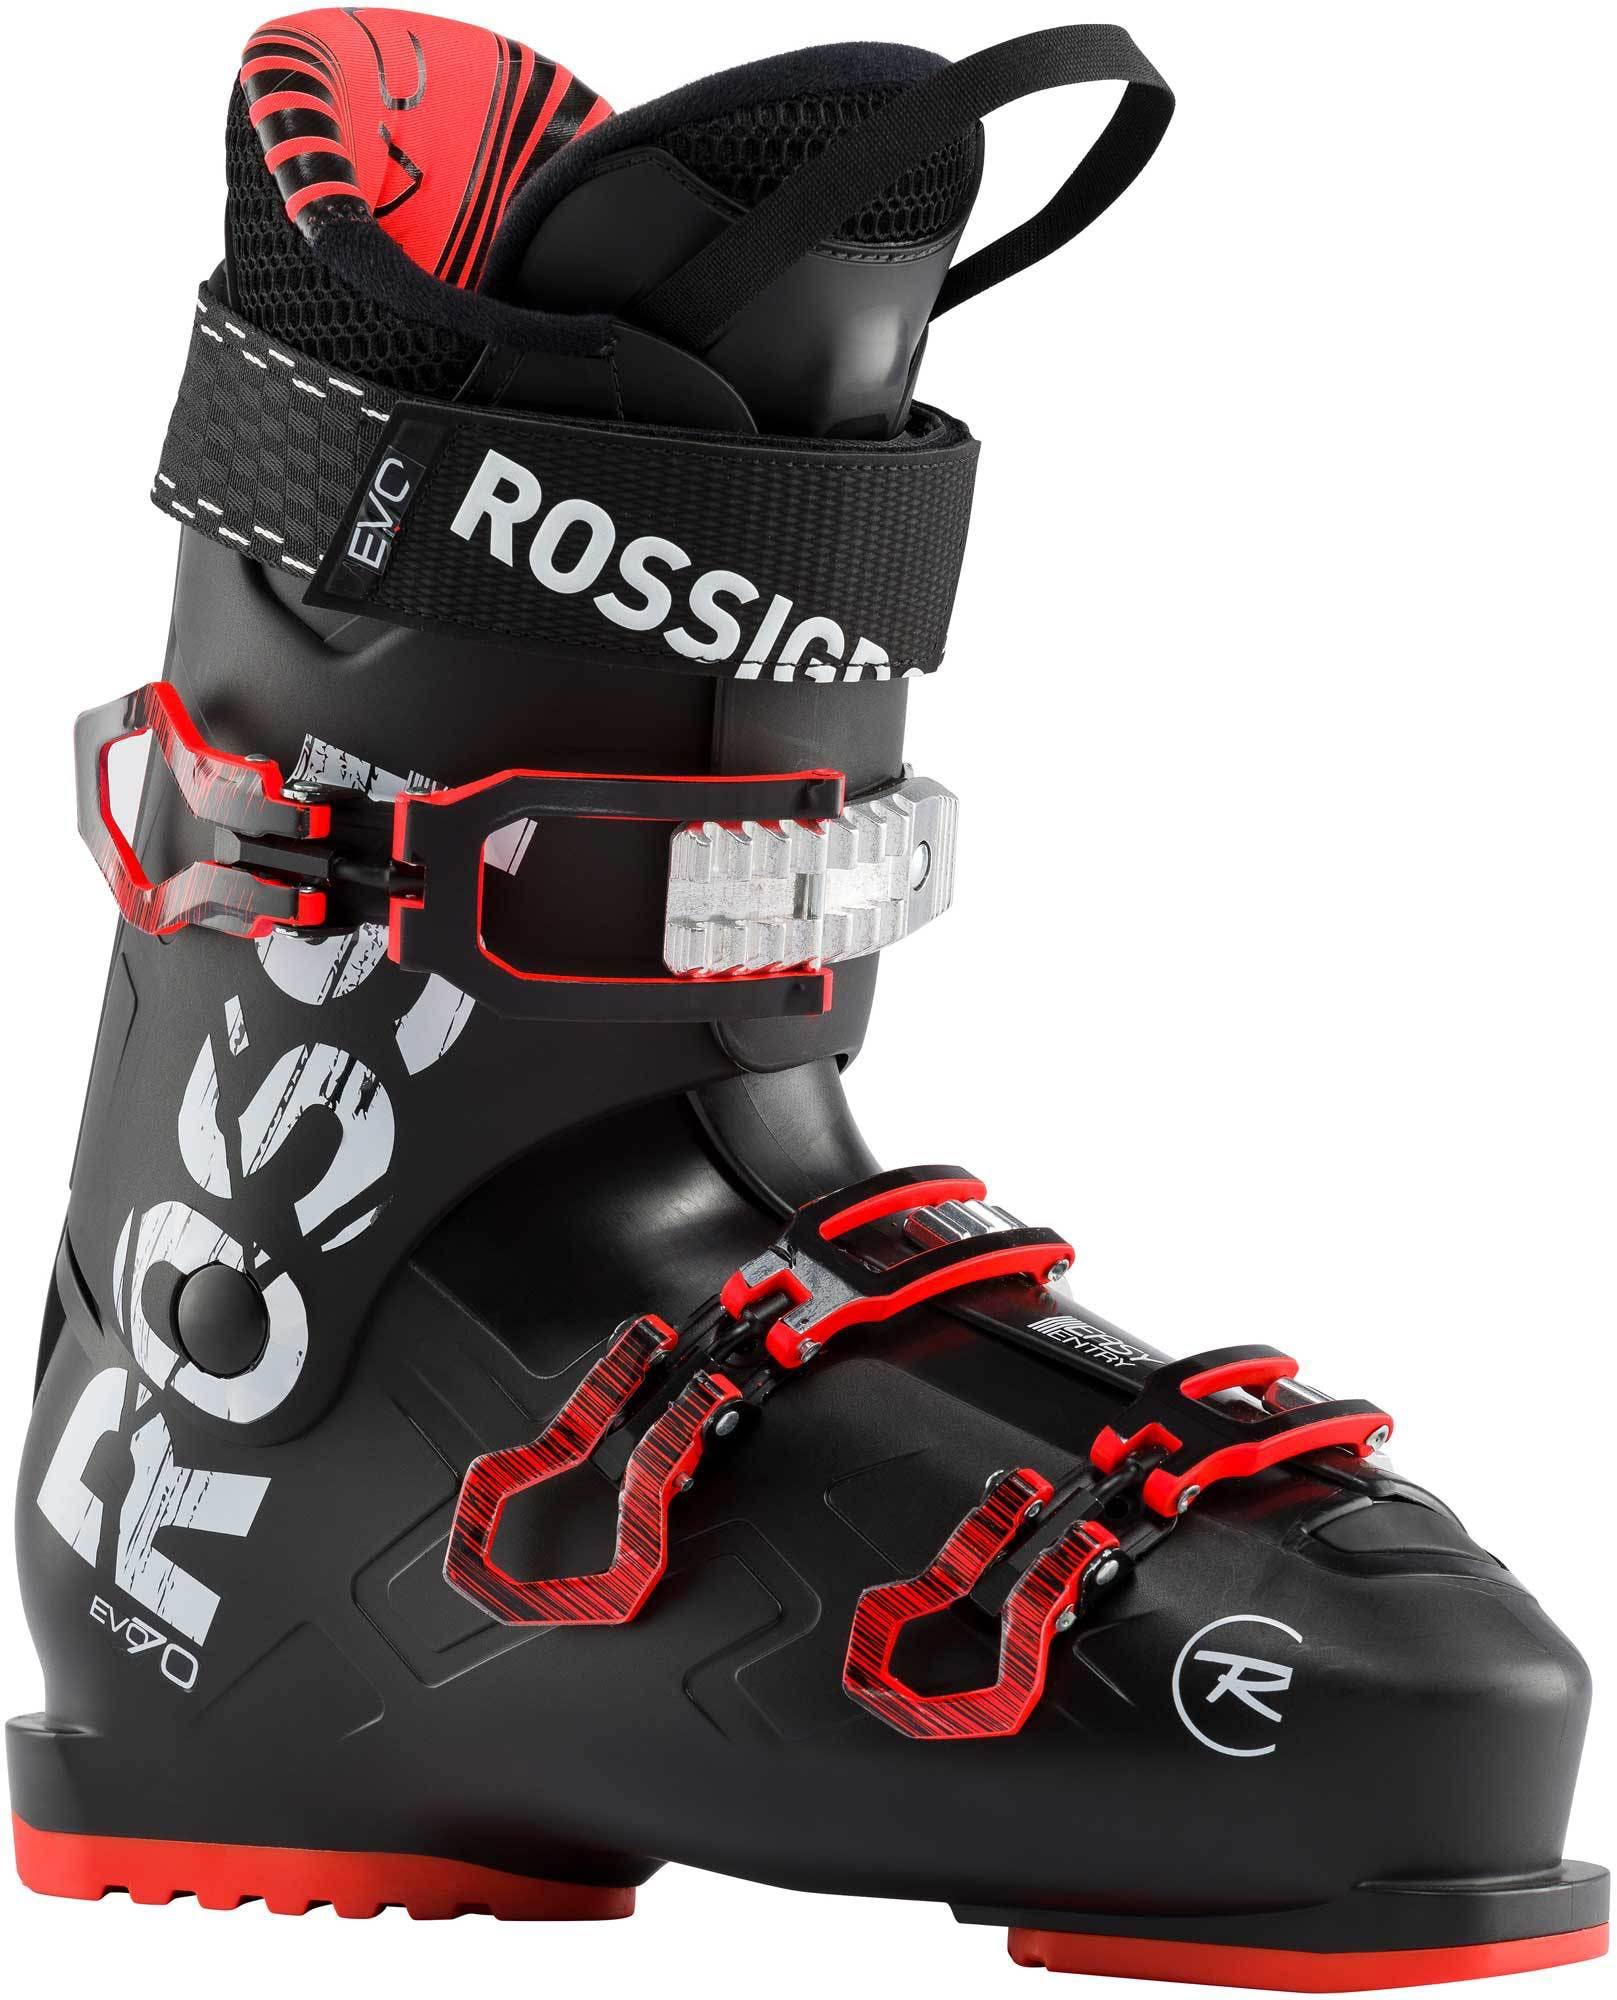 Rossignol Evo 70 Ski Boots - Black and Red, Size 26.5